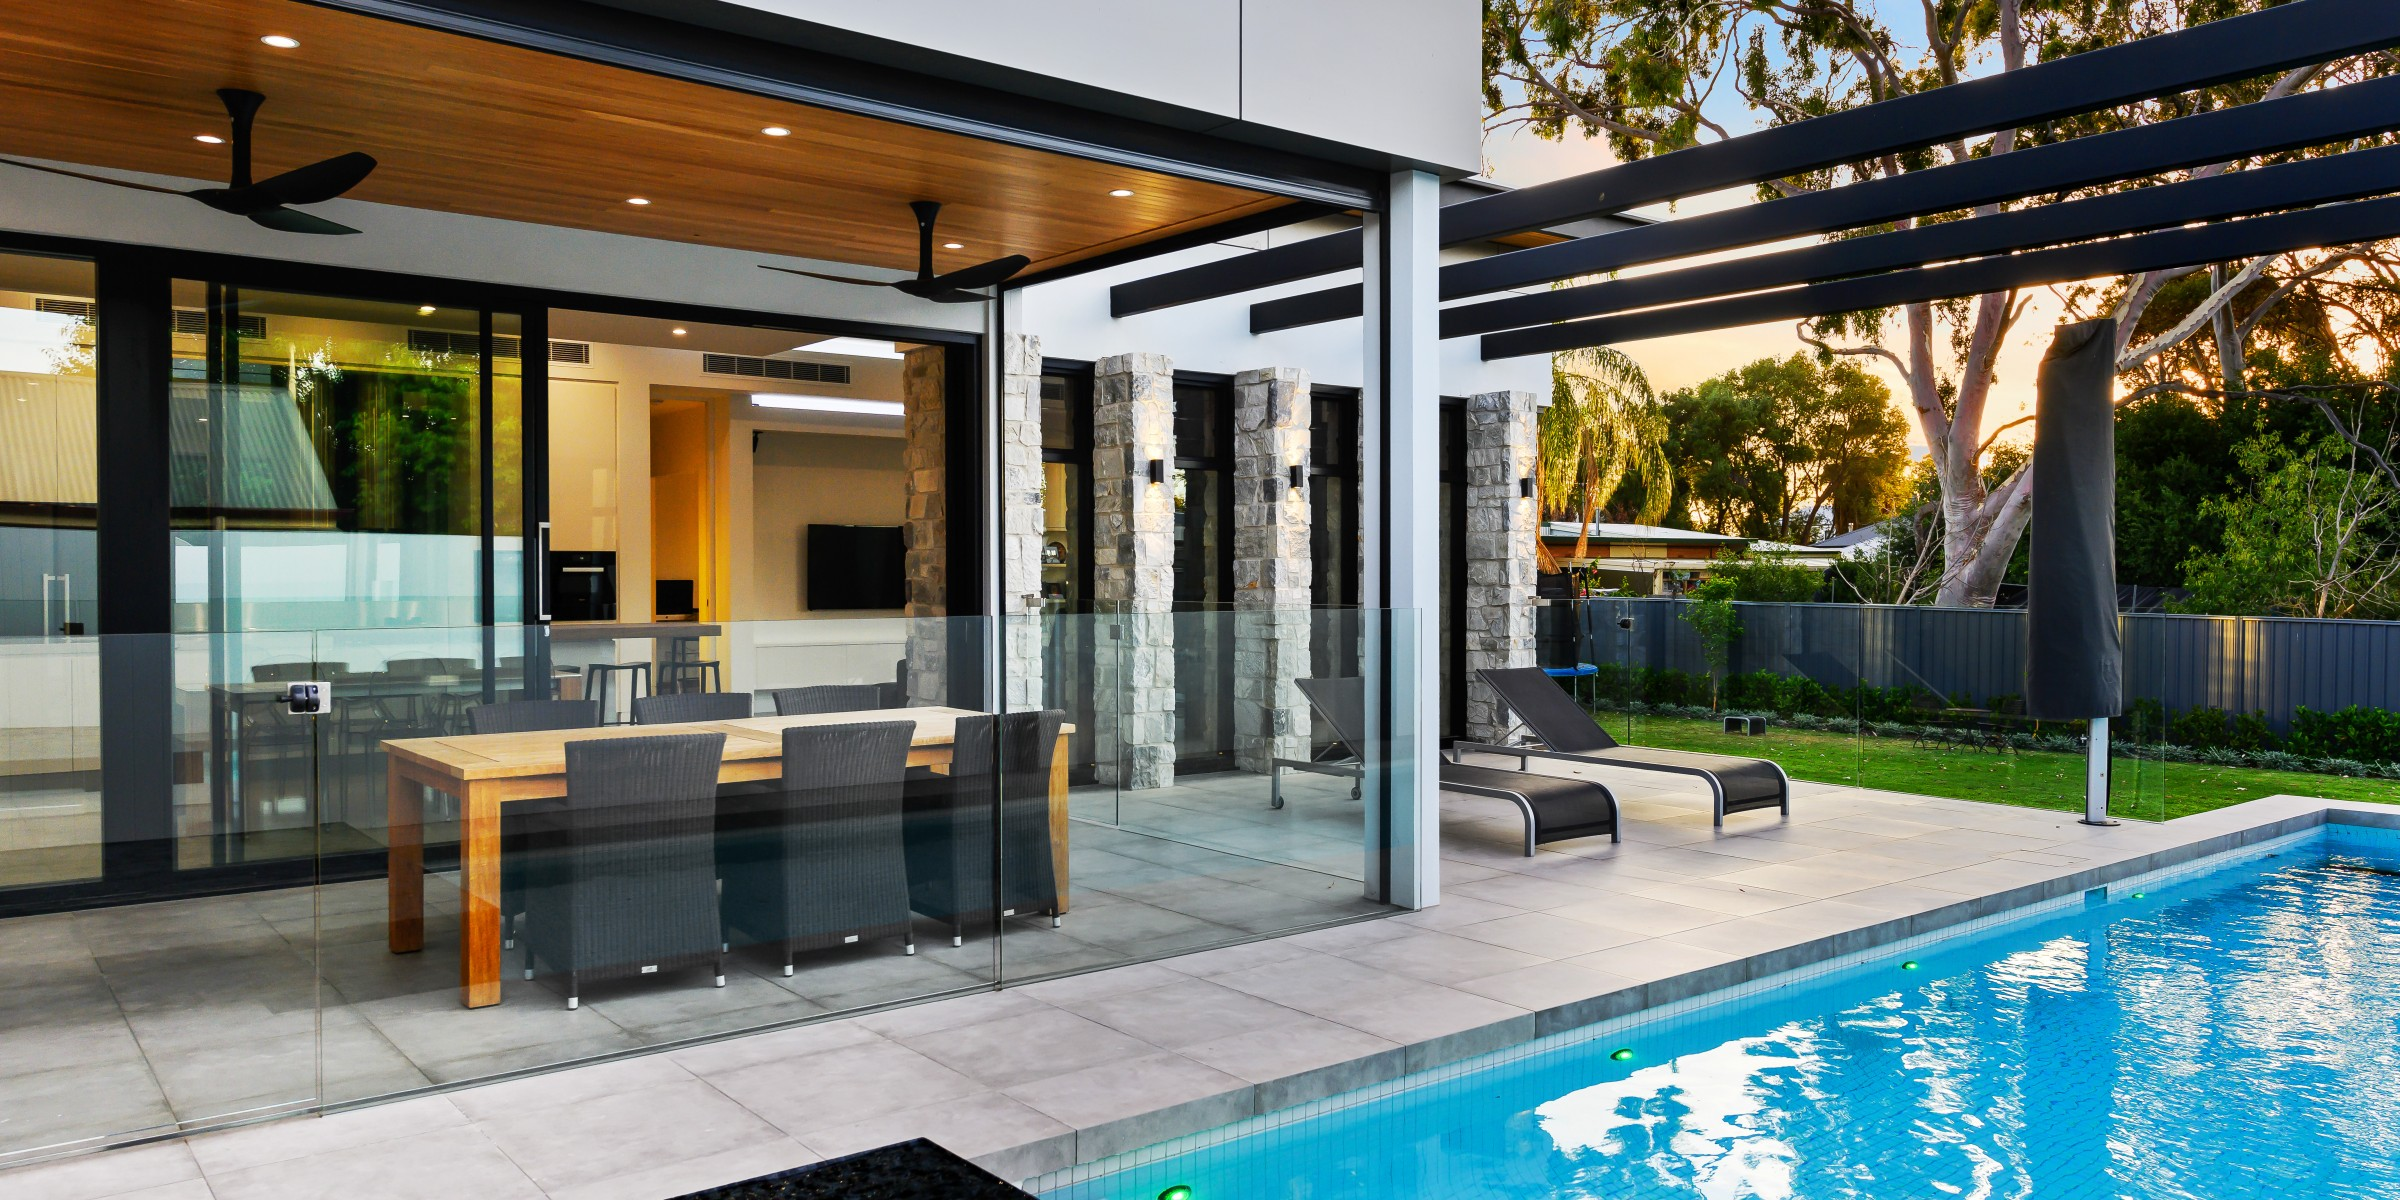 Pool, pergola and outdoor dining in backyard of Alpha Road, Kensington Park